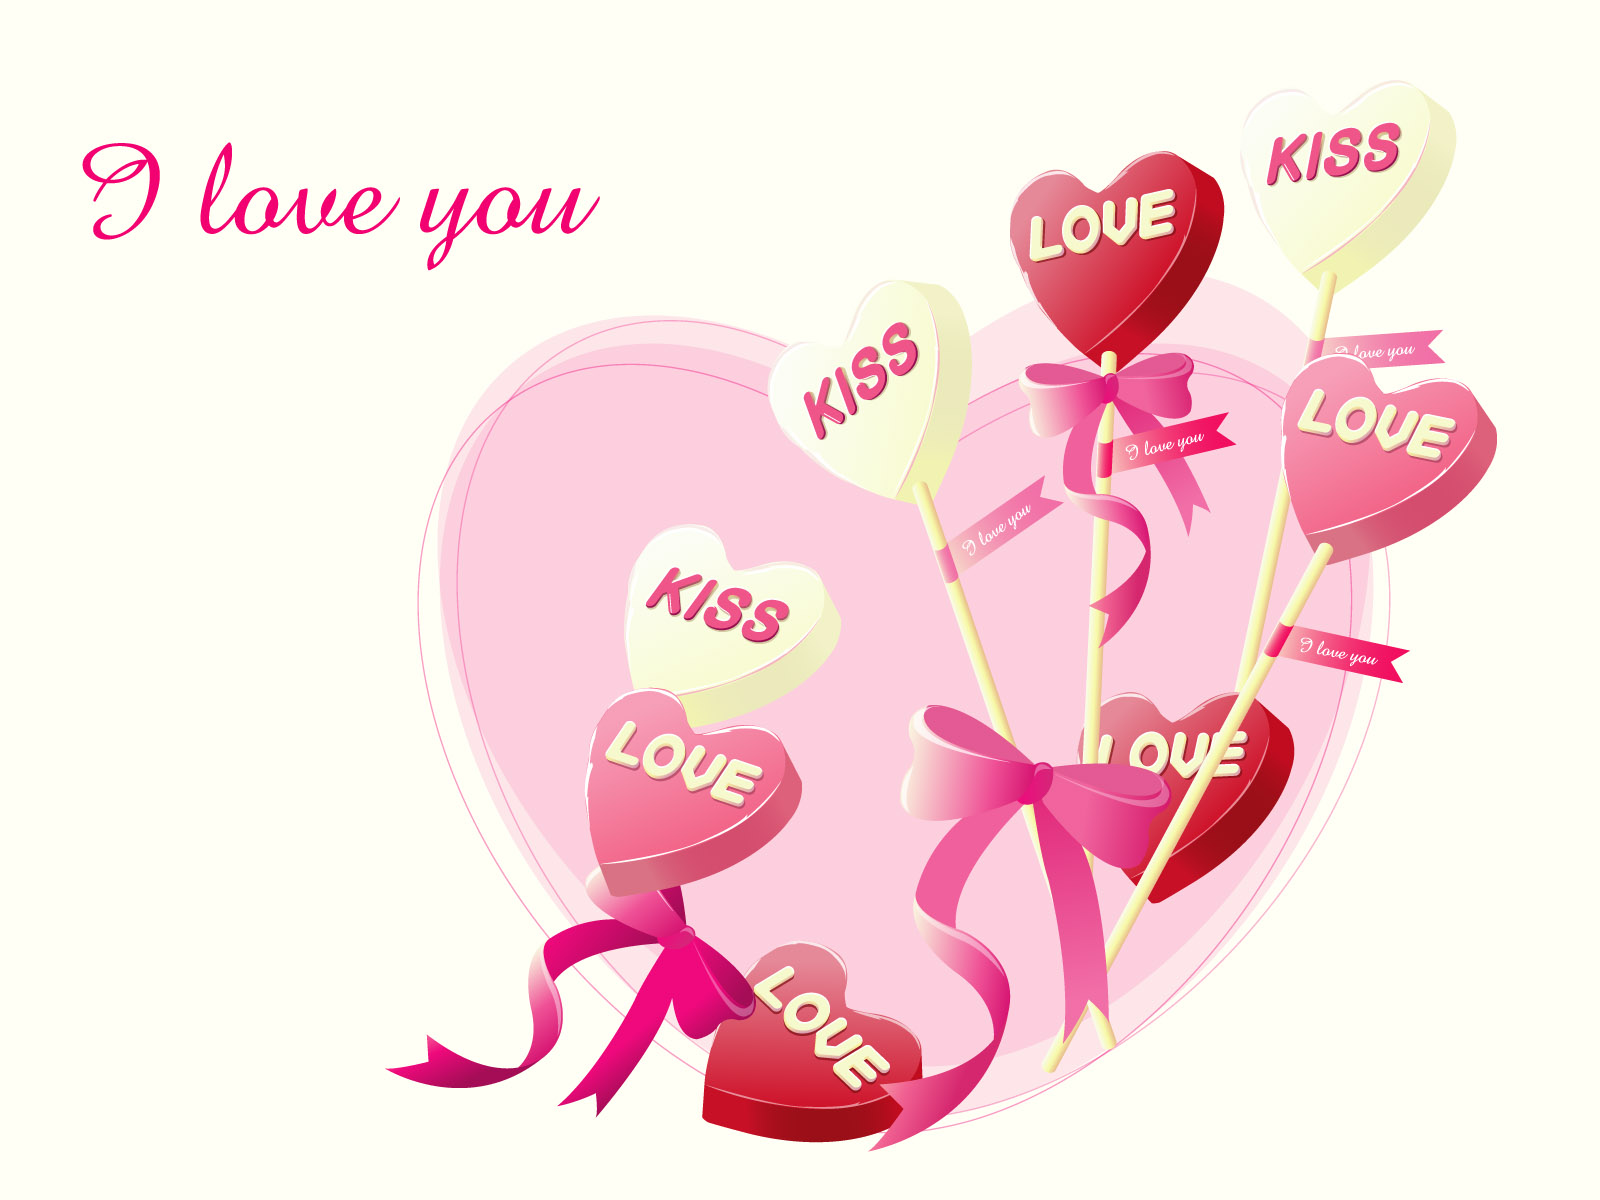 Love you (ilu) pictures, photos and hd wallpapers 2014